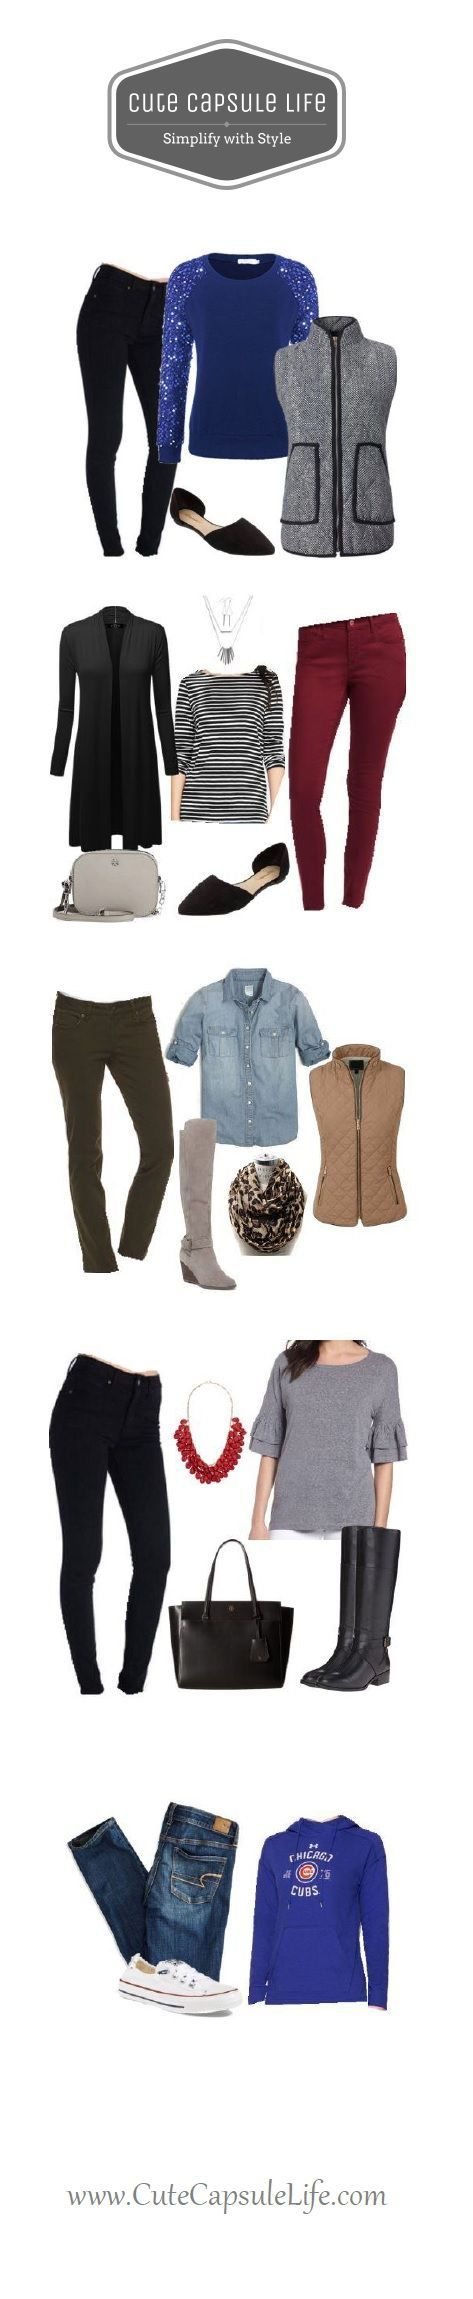 Fall Capsule Wardrobe: 80 outfits from 24 items